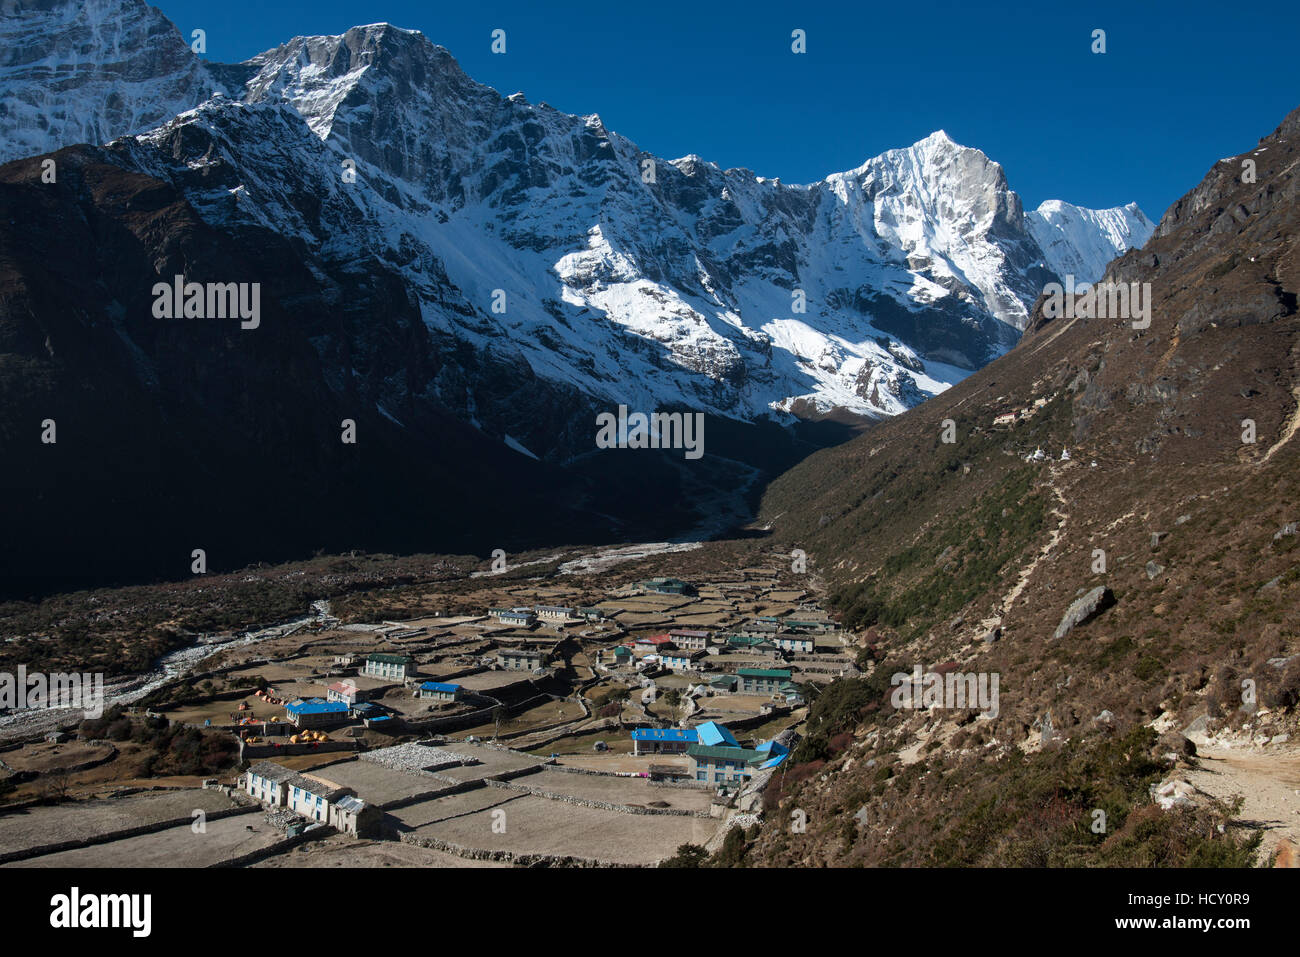 The little mountain village and monastery of Thame in the Khumbu (Everest) Region, Nepal - Stock Image